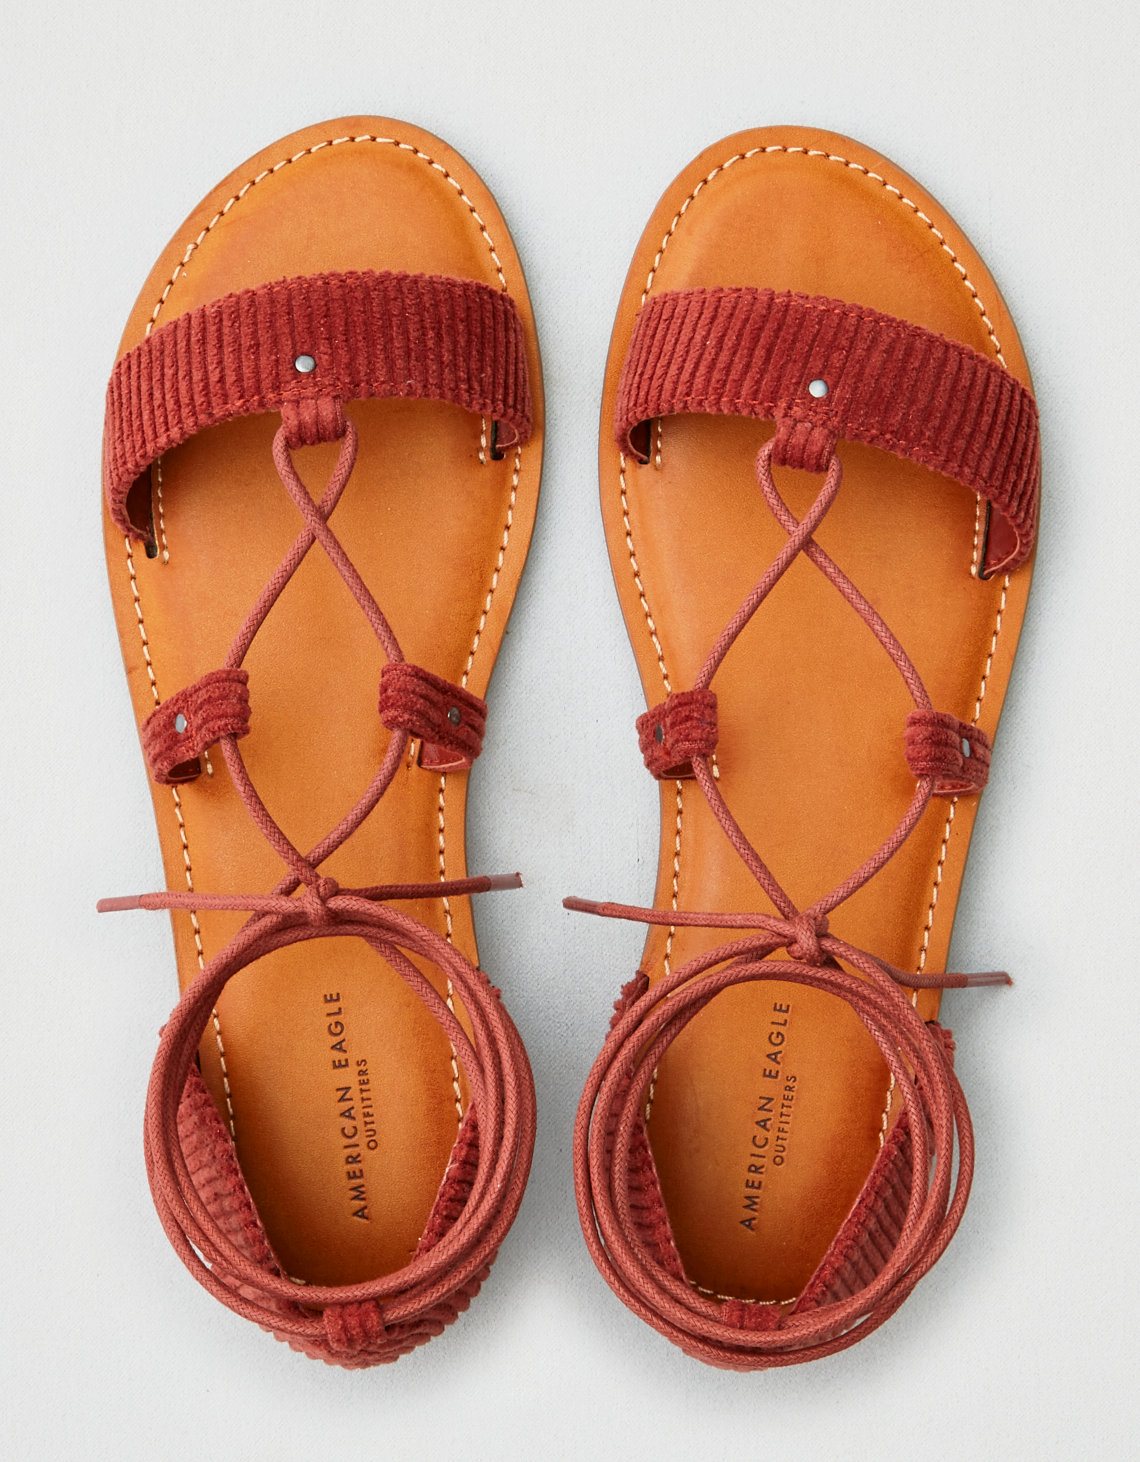 marketable sale online AEO Corduroy Lace Up Sandal quality original popular cheap price the cheapest online new sale online hhI9ZKeTKX